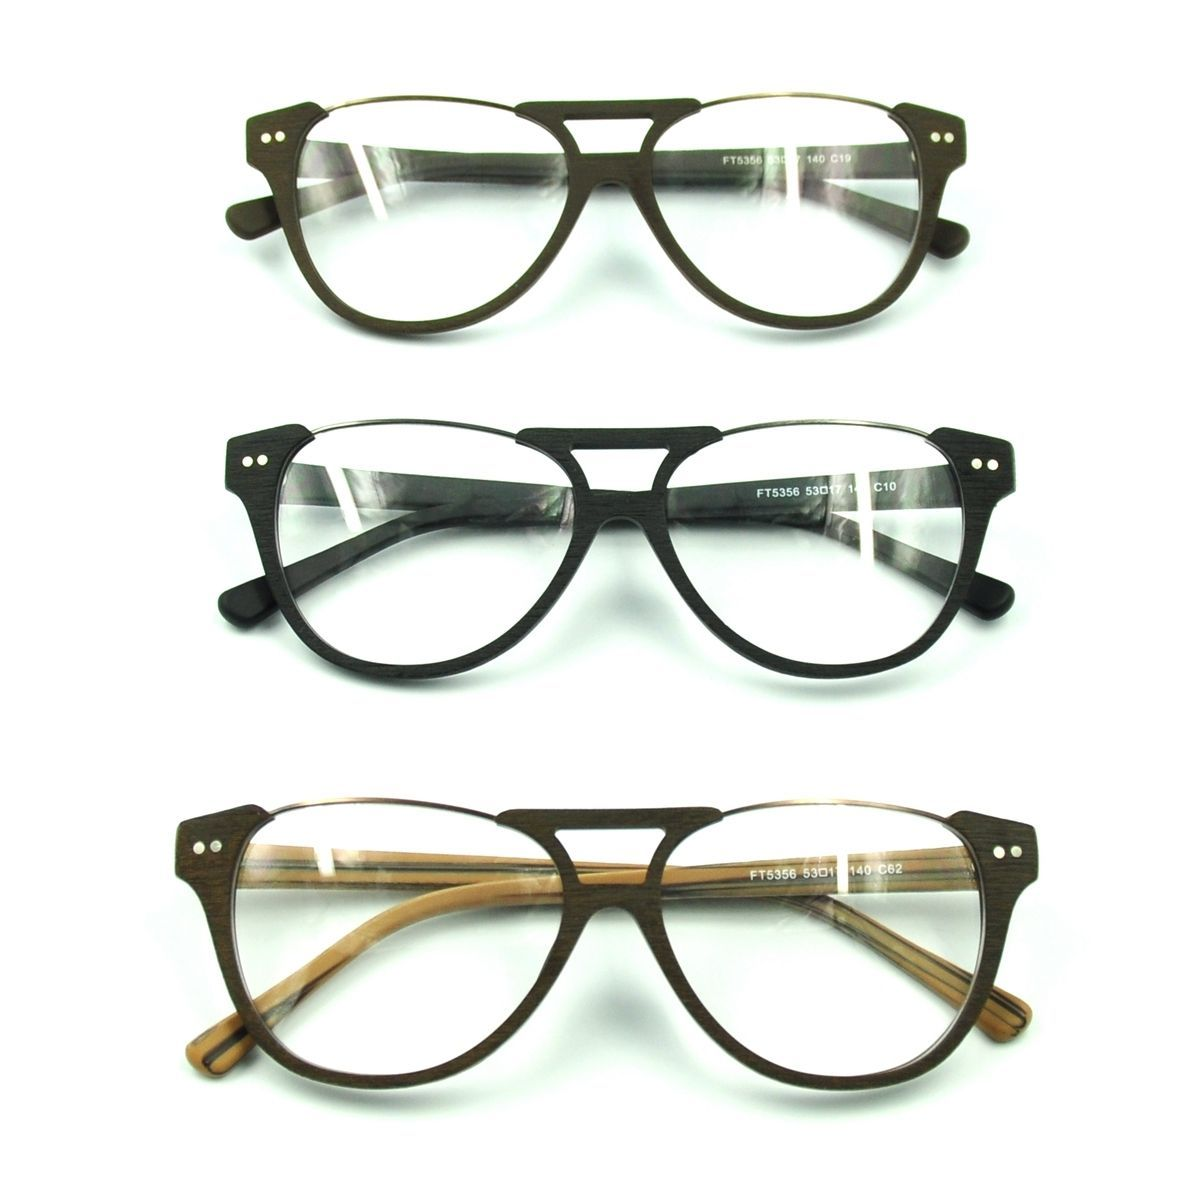 Primary image for Vintage Acetate Topless Eyeglasses Frame Half Rim RX Spectacles Retro Wood Grain